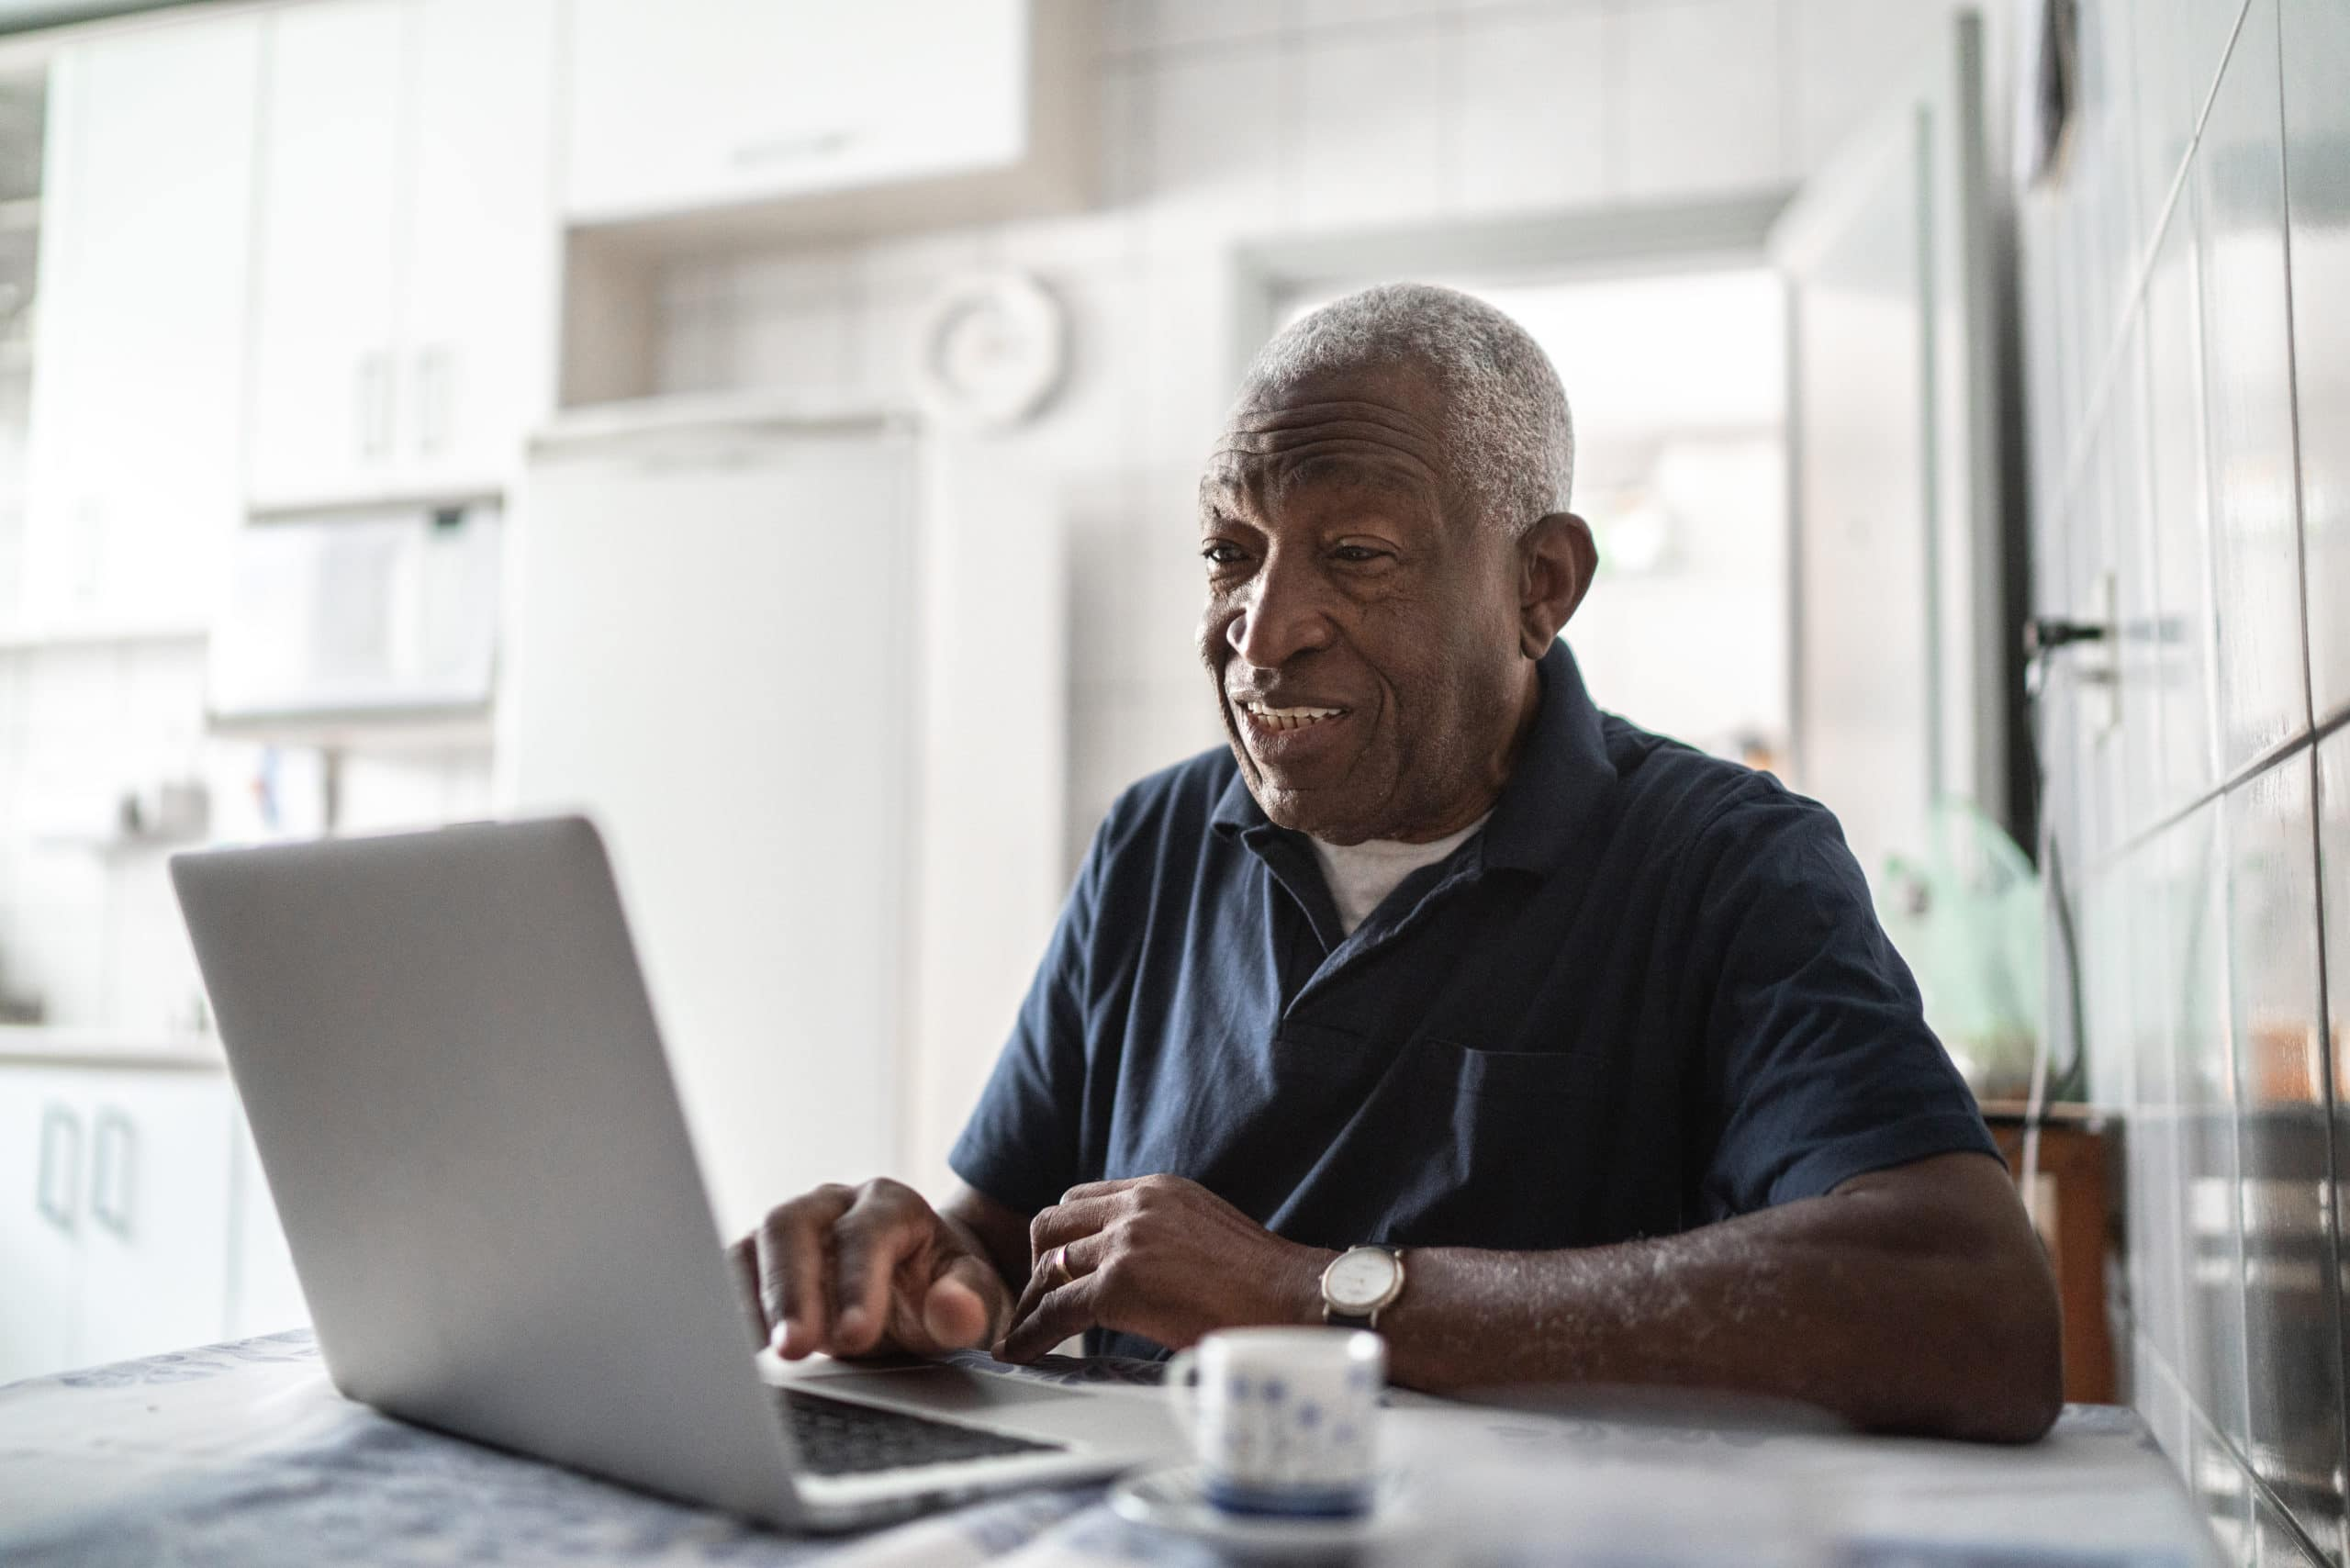 The symposium on April 22 will help seniors navigate in-person and virtual social interactions to stay connected.